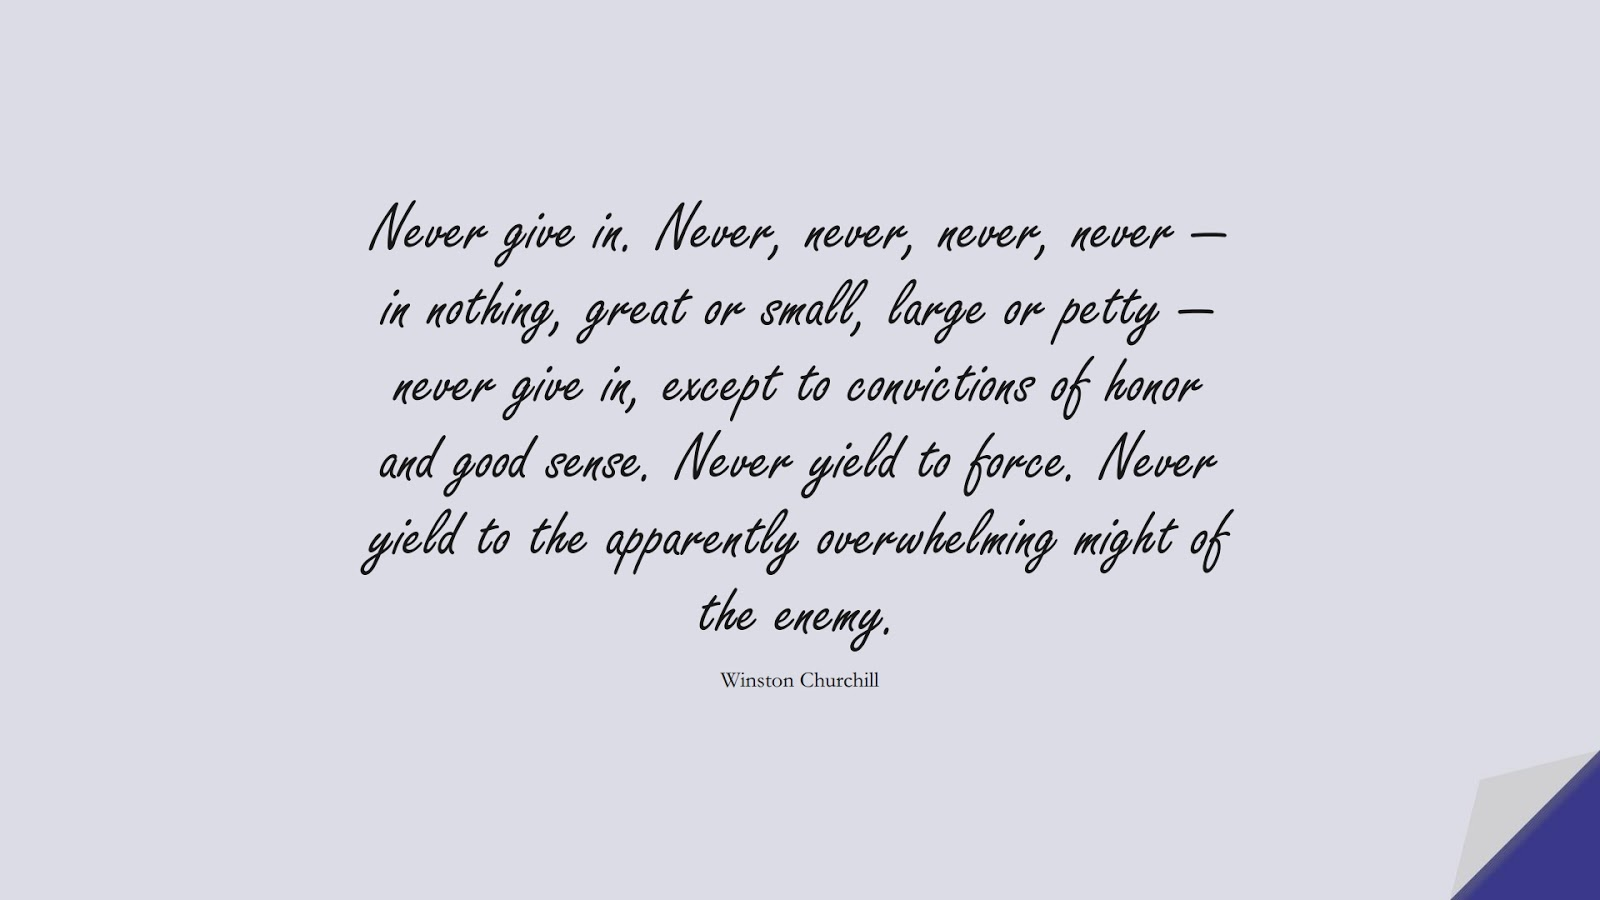 Never give in. Never, never, never, never — in nothing, great or small, large or petty — never give in, except to convictions of honor and good sense. Never yield to force. Never yield to the apparently overwhelming might of the enemy. (Winston Churchill);  #NeverGiveUpQuotes